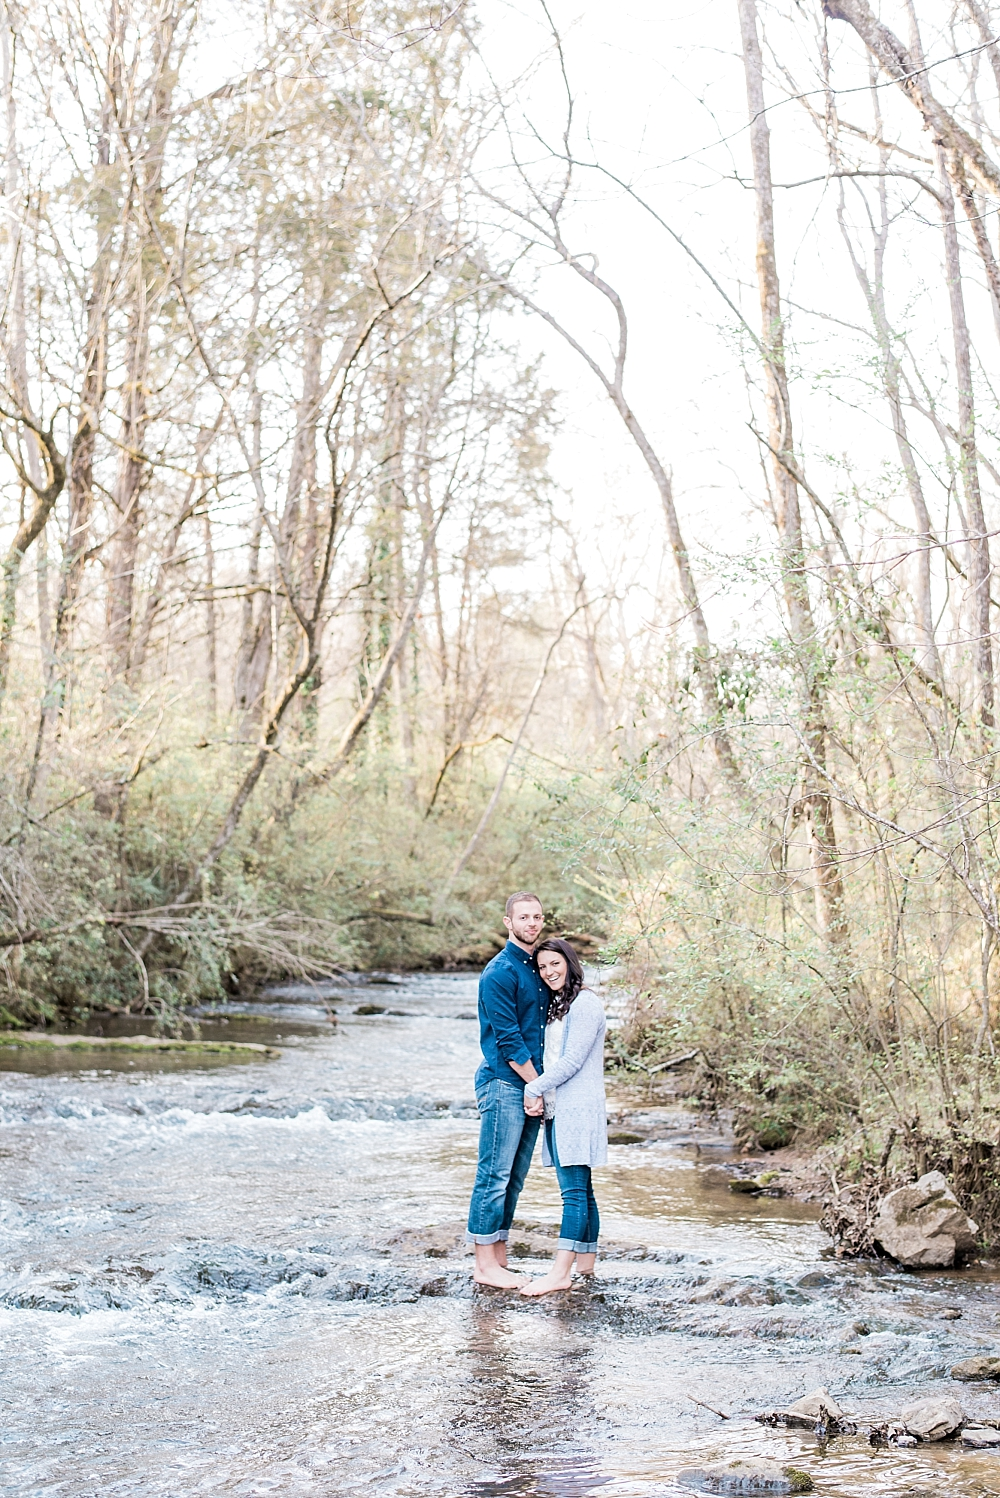 JuicebeatsPhotography_KnoxvilleEngagement_Kristina&Ben_0006.jpg